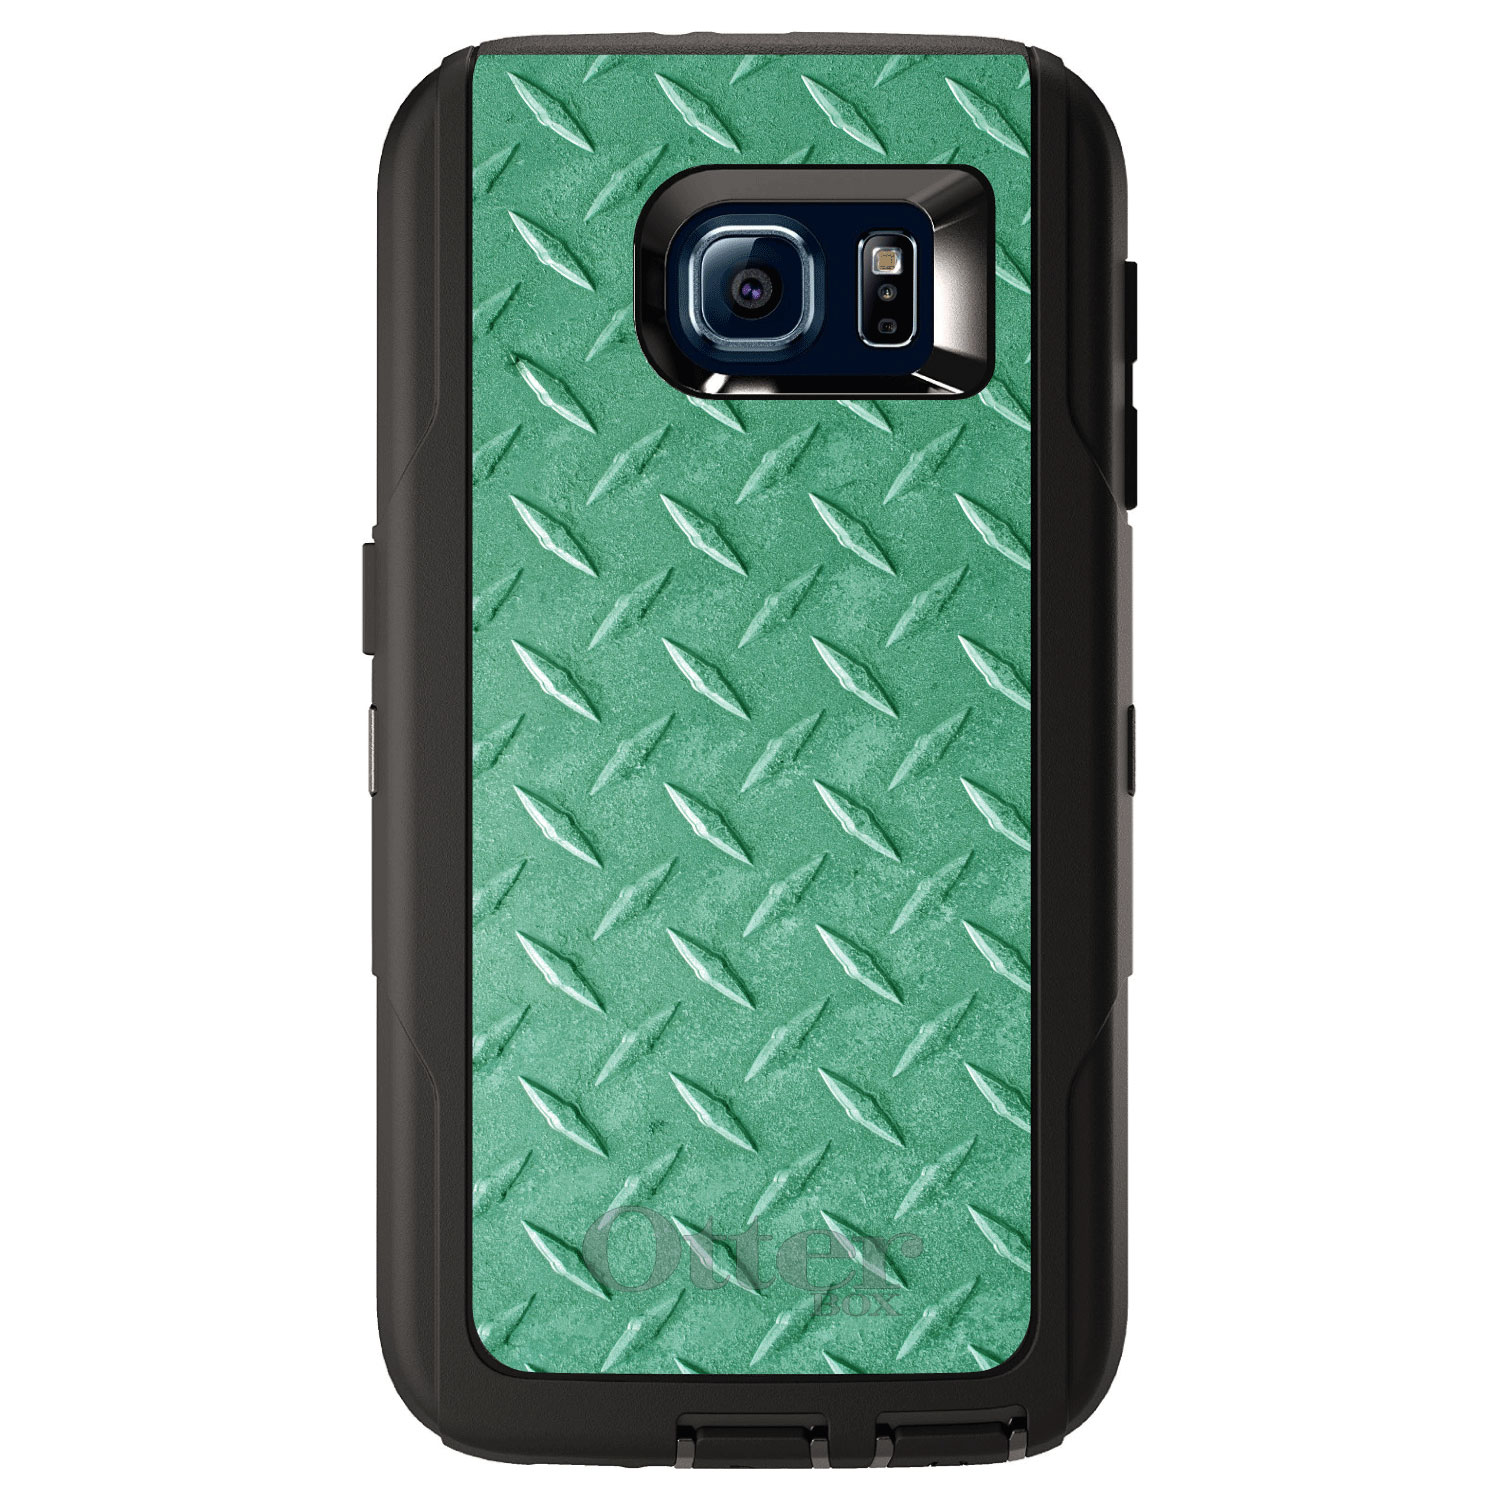 DistinctInk™ Custom Black OtterBox Defender Series Case for Samsung Galaxy S6 - Green Diamond Plate Steel Print